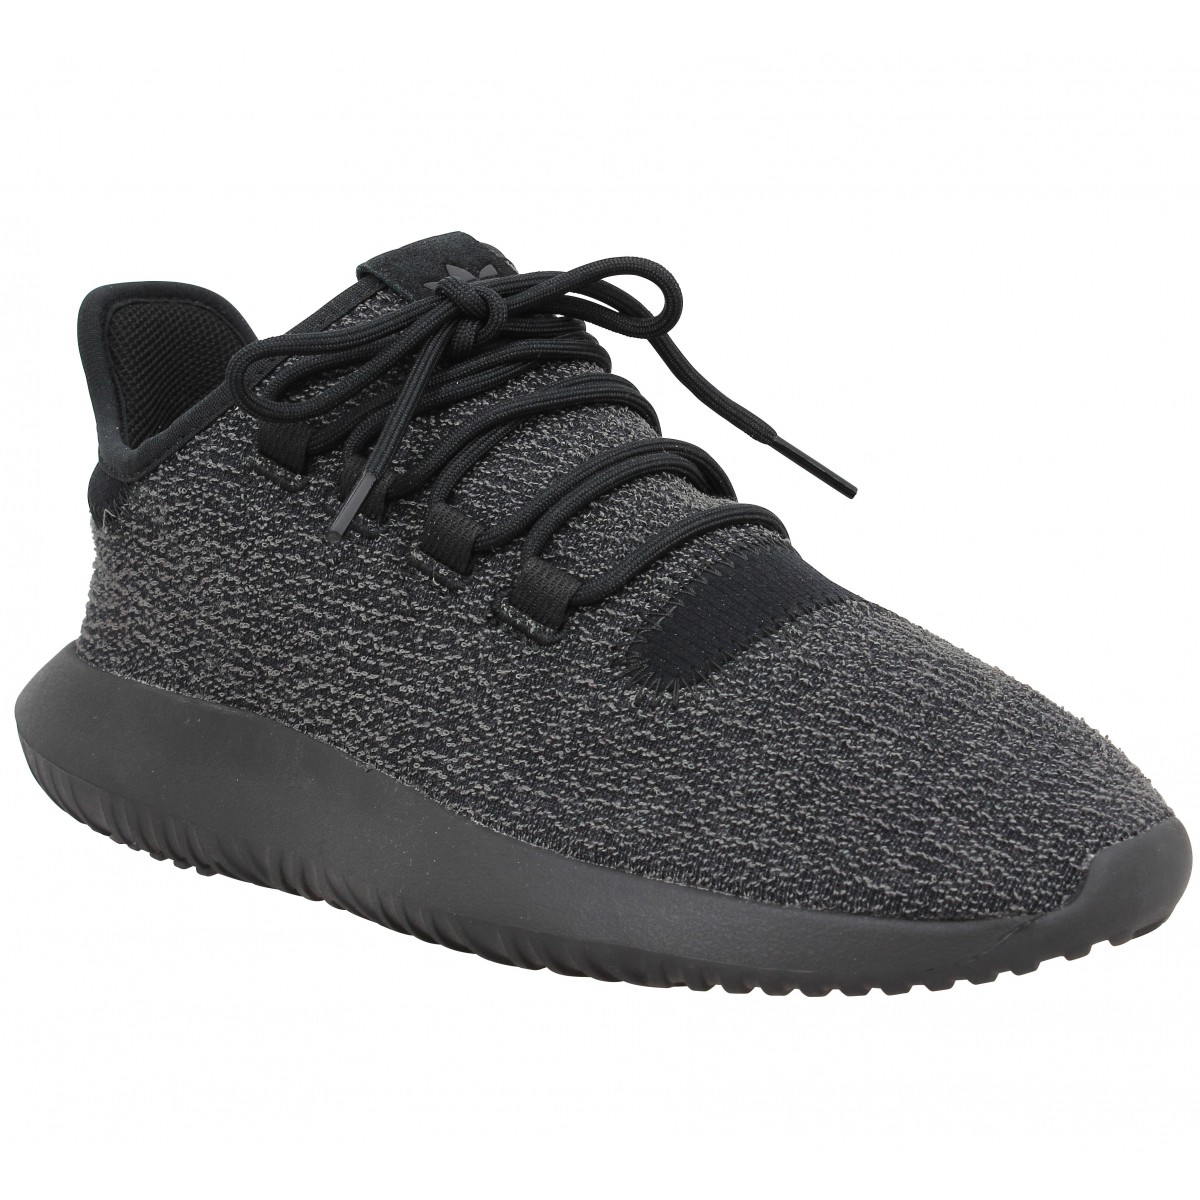 Baskets ADIDAS Tubular Shadow toile Homme Black